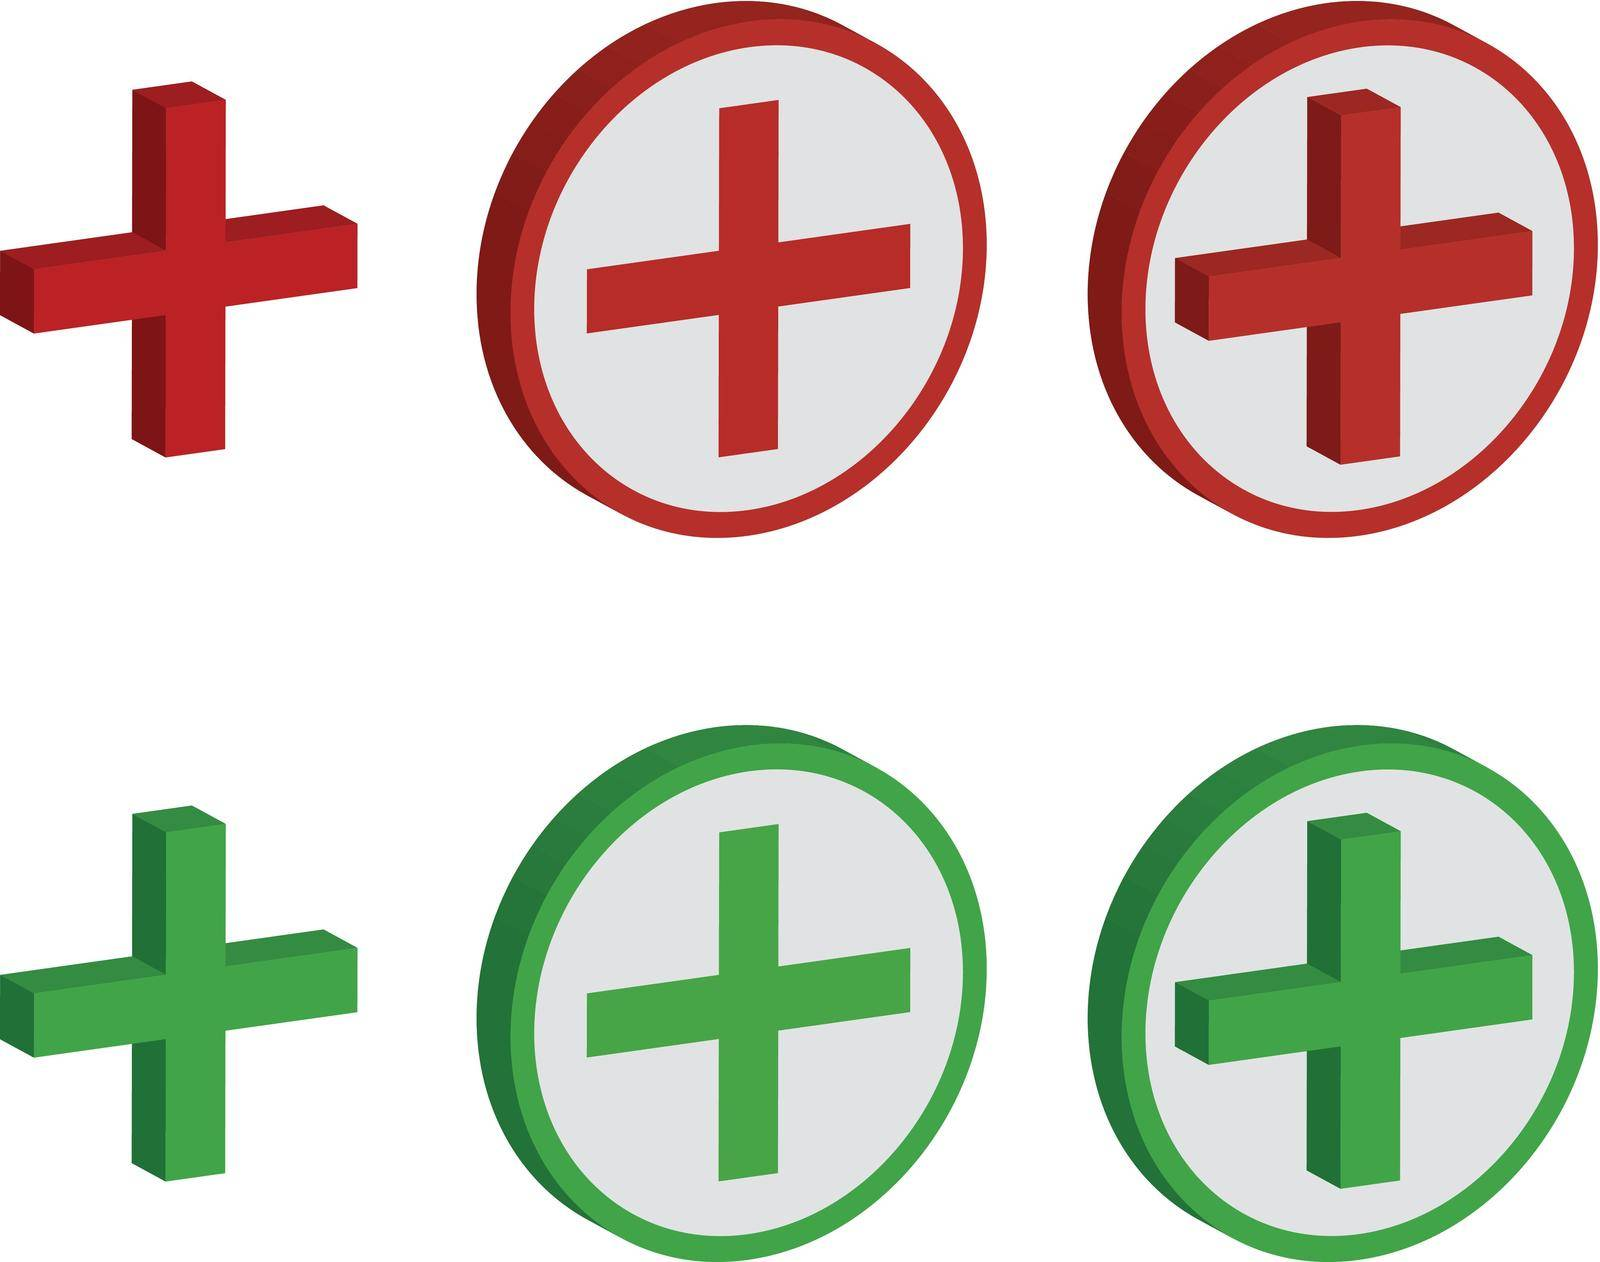 Plus sign set in green and red colors. Three types of signal on white isolated background, three dimensions.